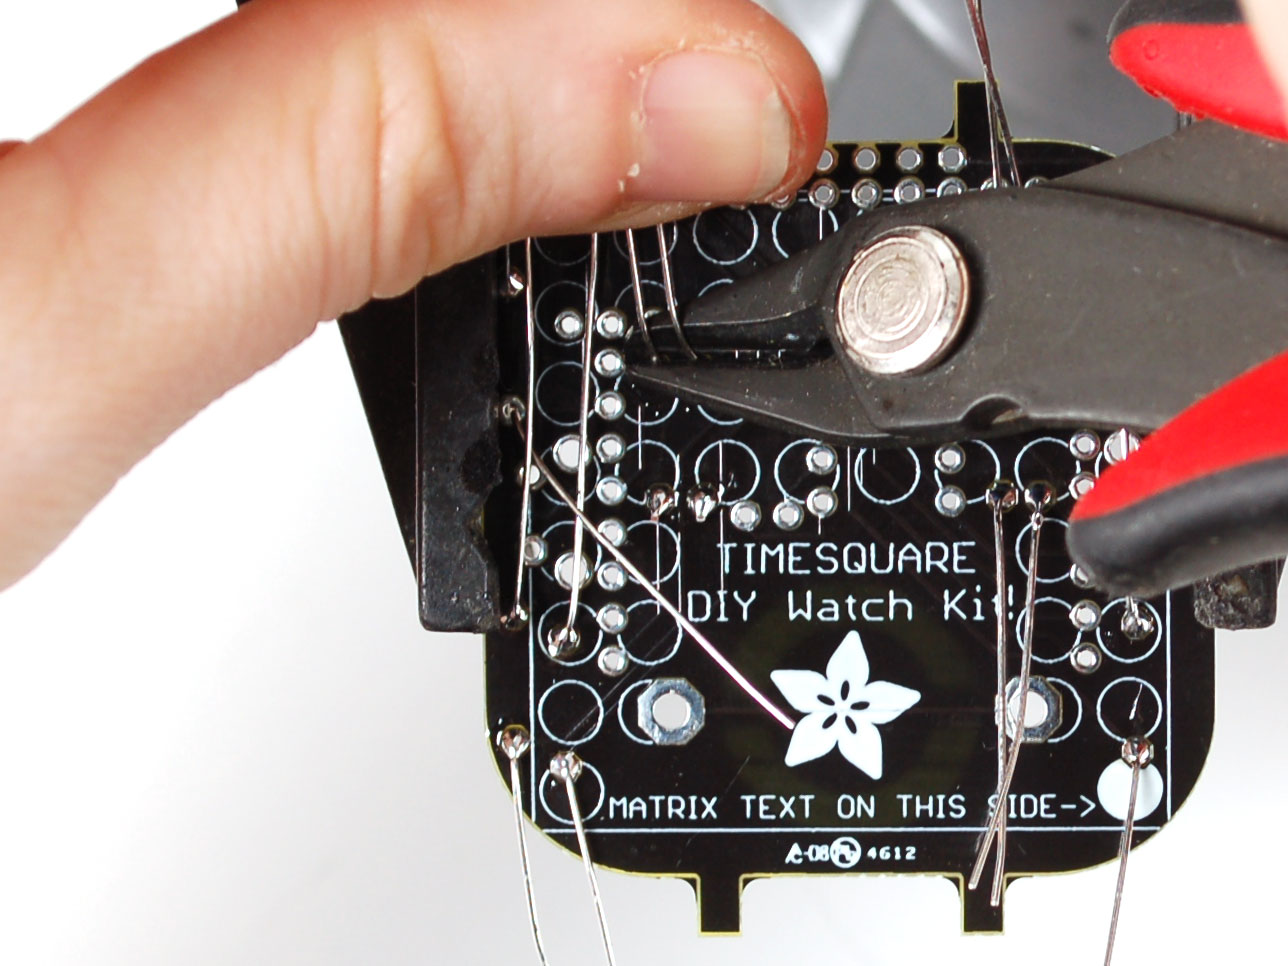 adafruit_products_resclip2.jpg